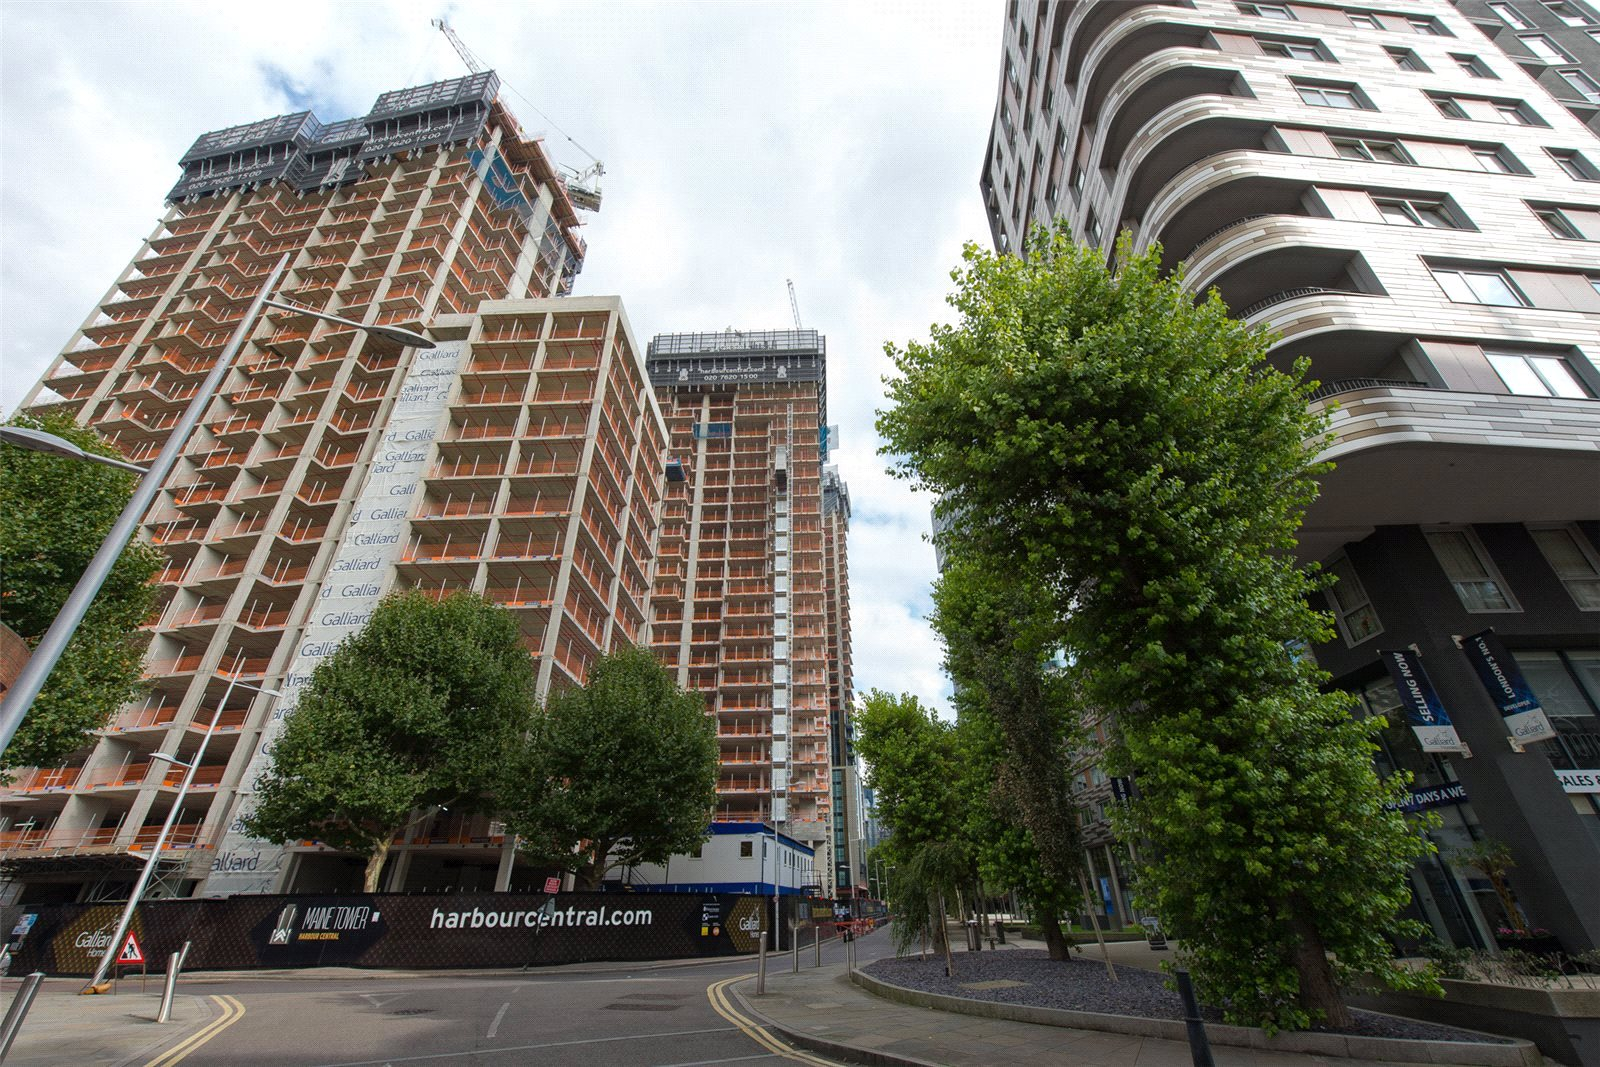 3 Bedrooms Apartment Flat for sale in Maine Tower, Harbour Central, Lighterman's Road, E14